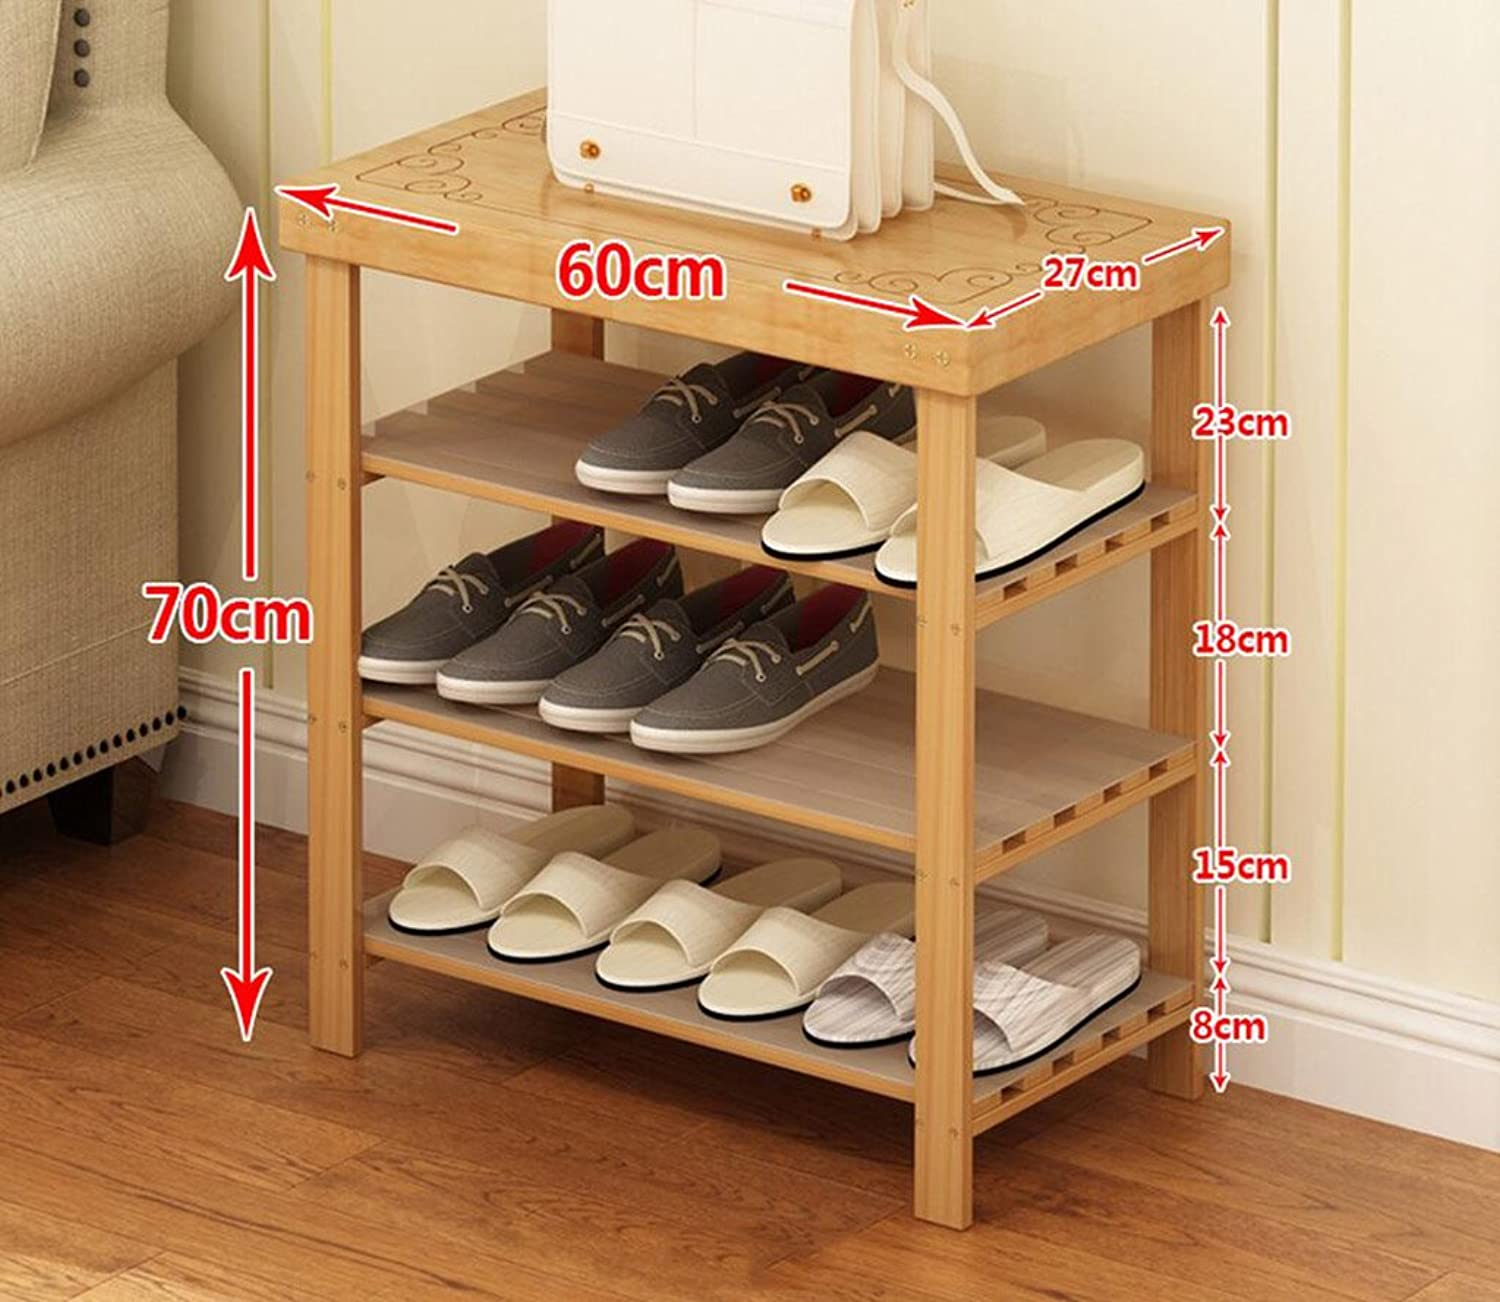 Shoes Bench Organizing Rack Shoes Racks Bamboo Products Diy